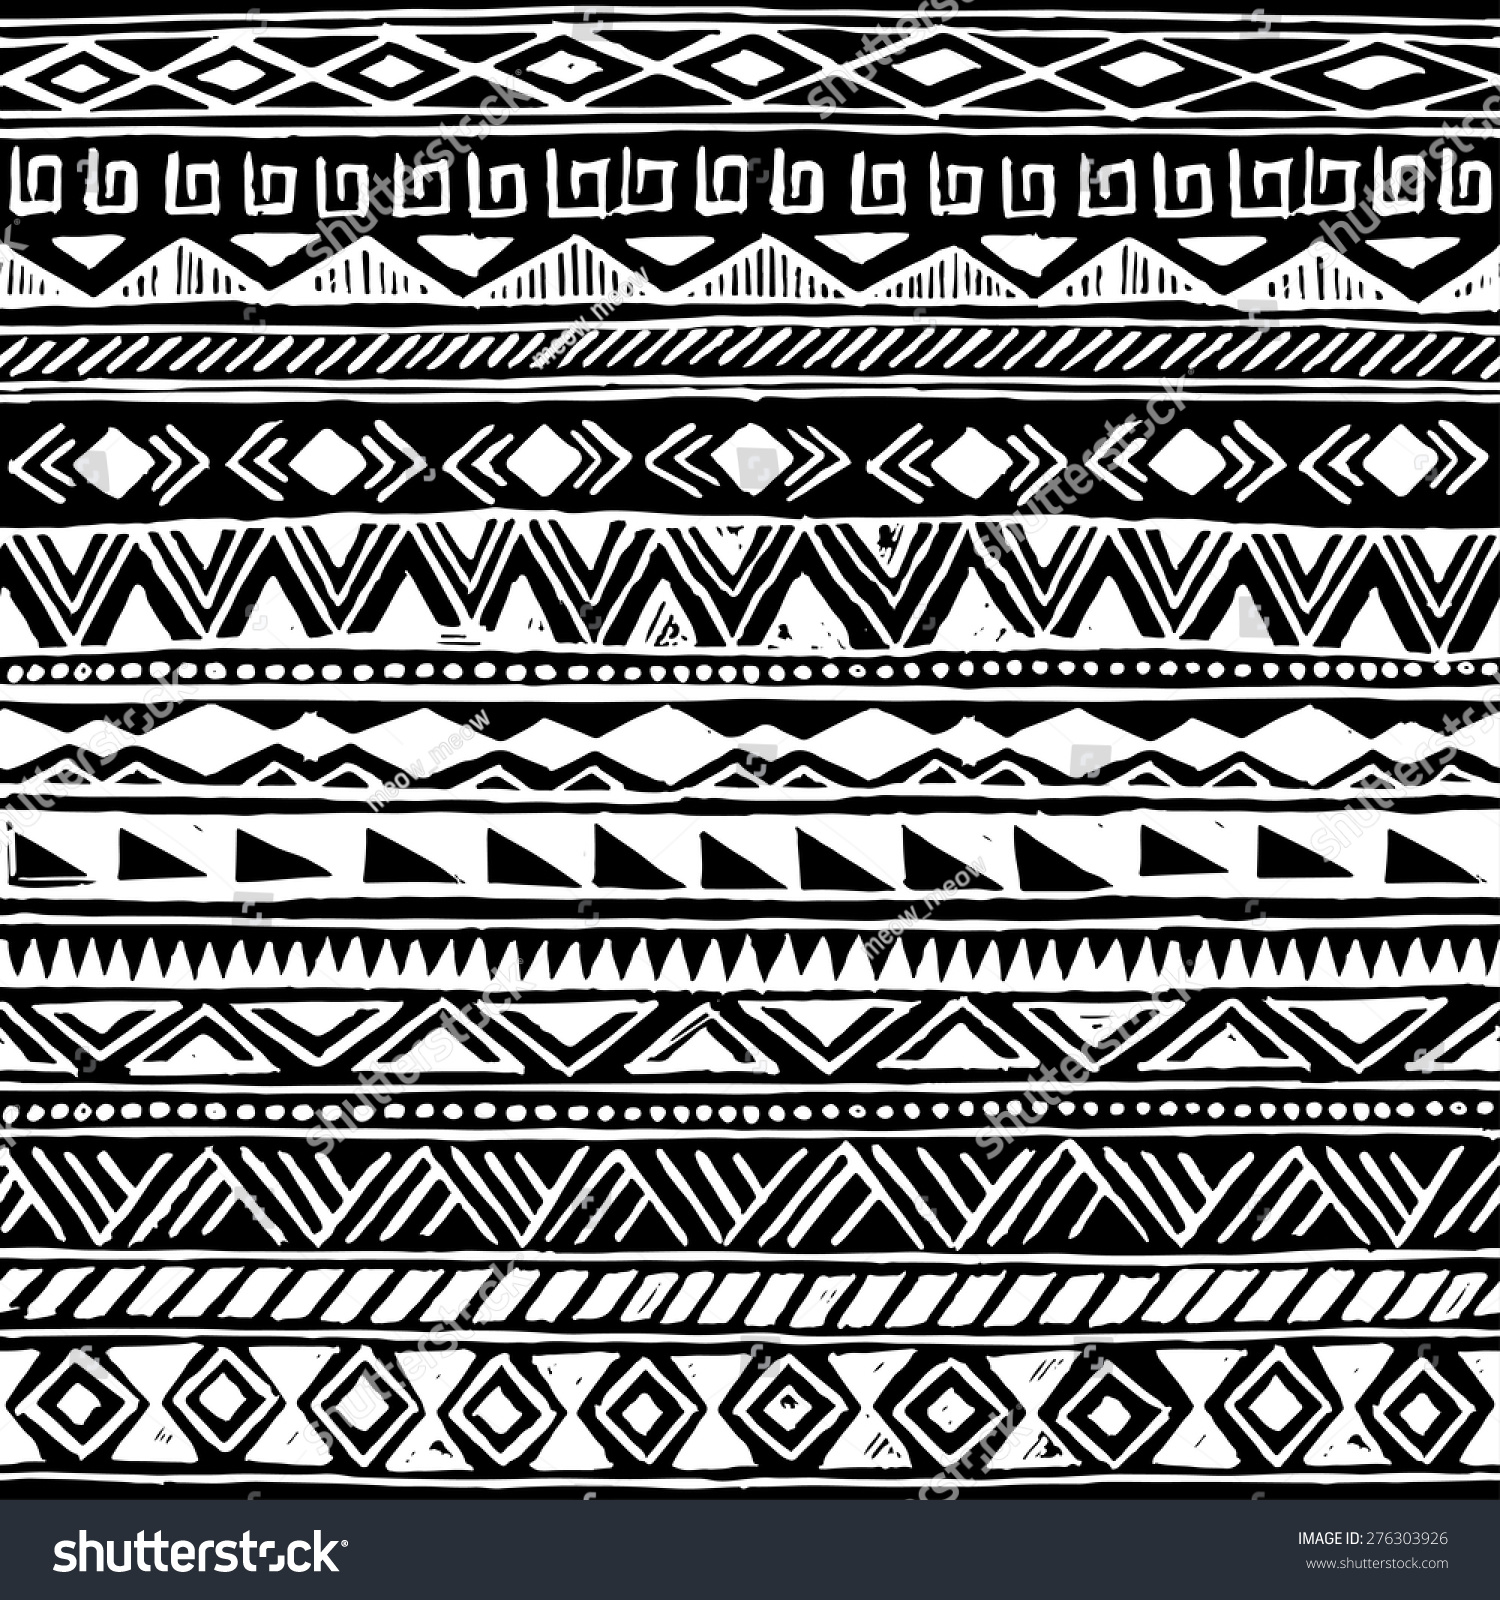 Download image ... Tribal Print Pattern Black And White